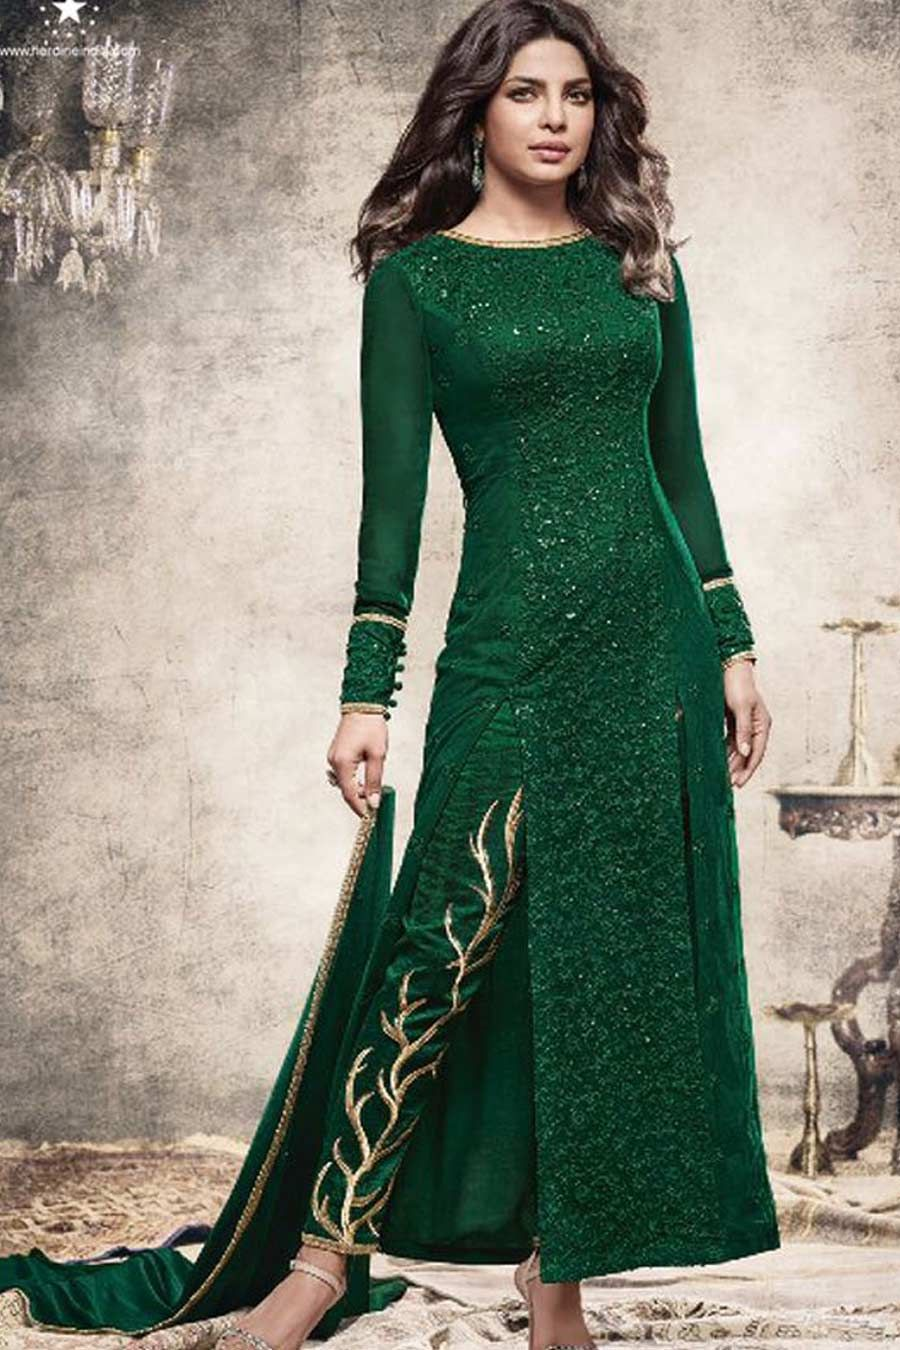 Green Georgette Semi Stitch Designer Dress | Designer Dress ...